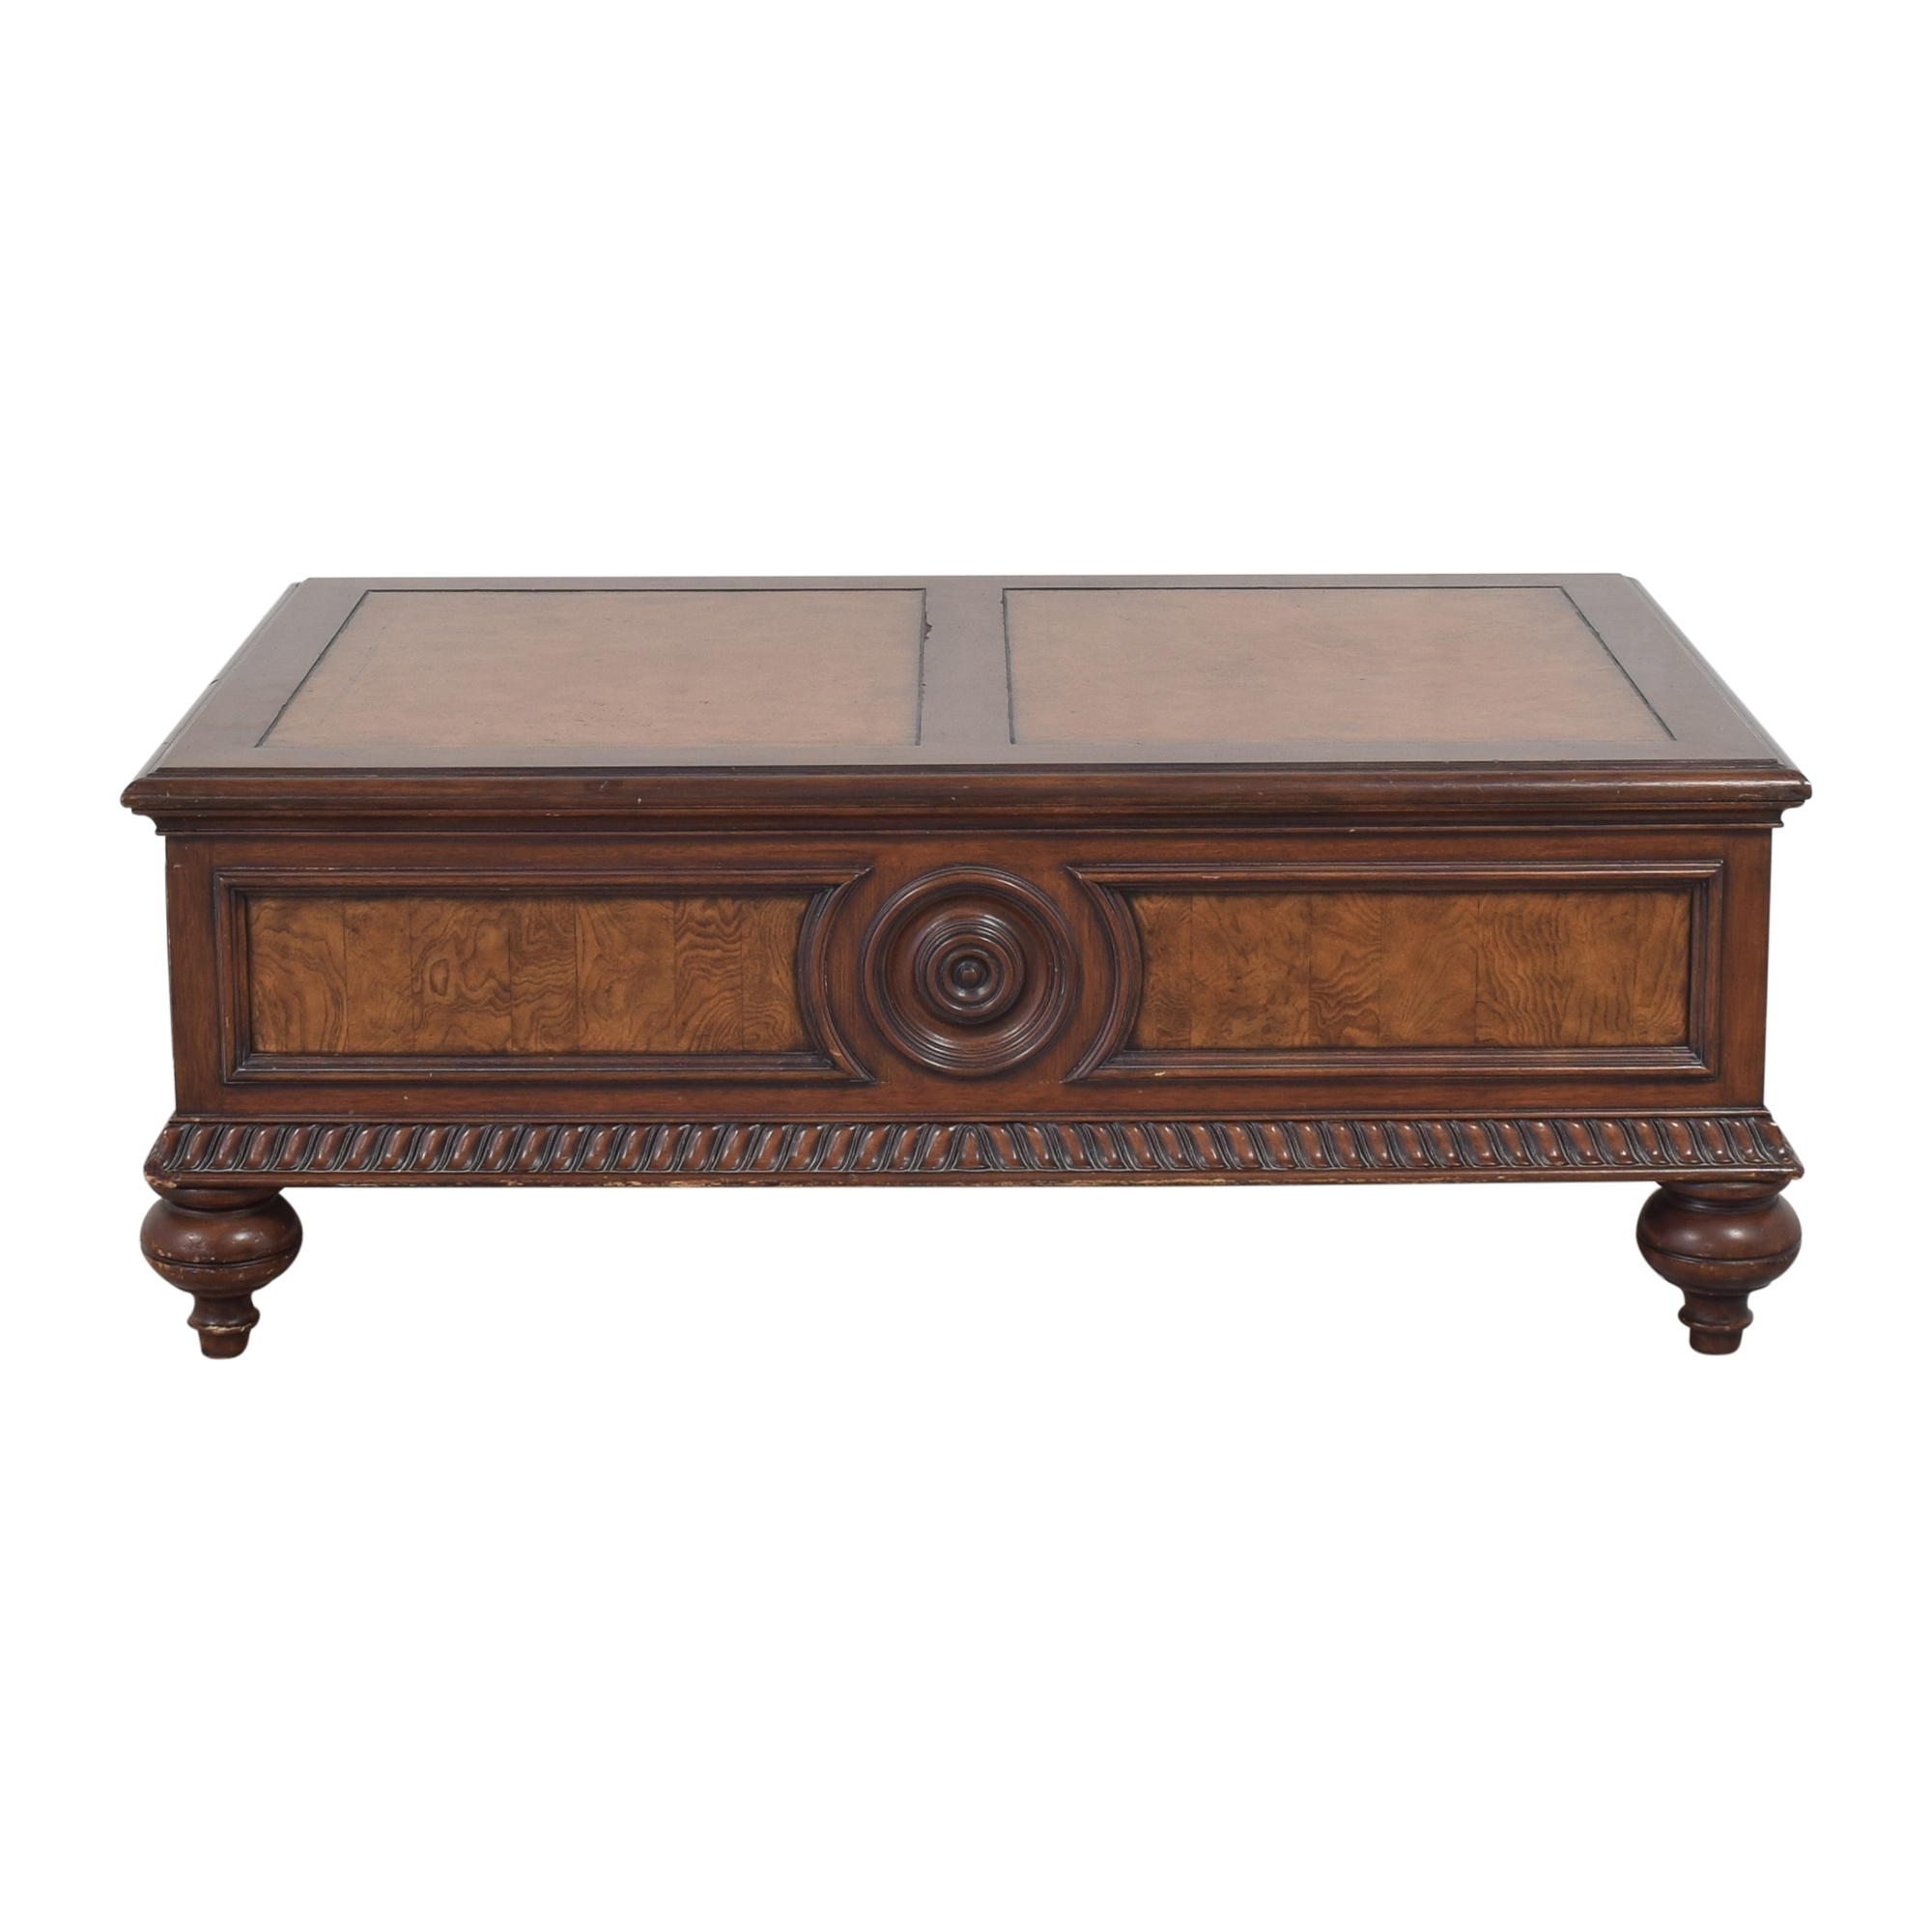 Ethan Allen Ethan Allen Morley Coffee Table used